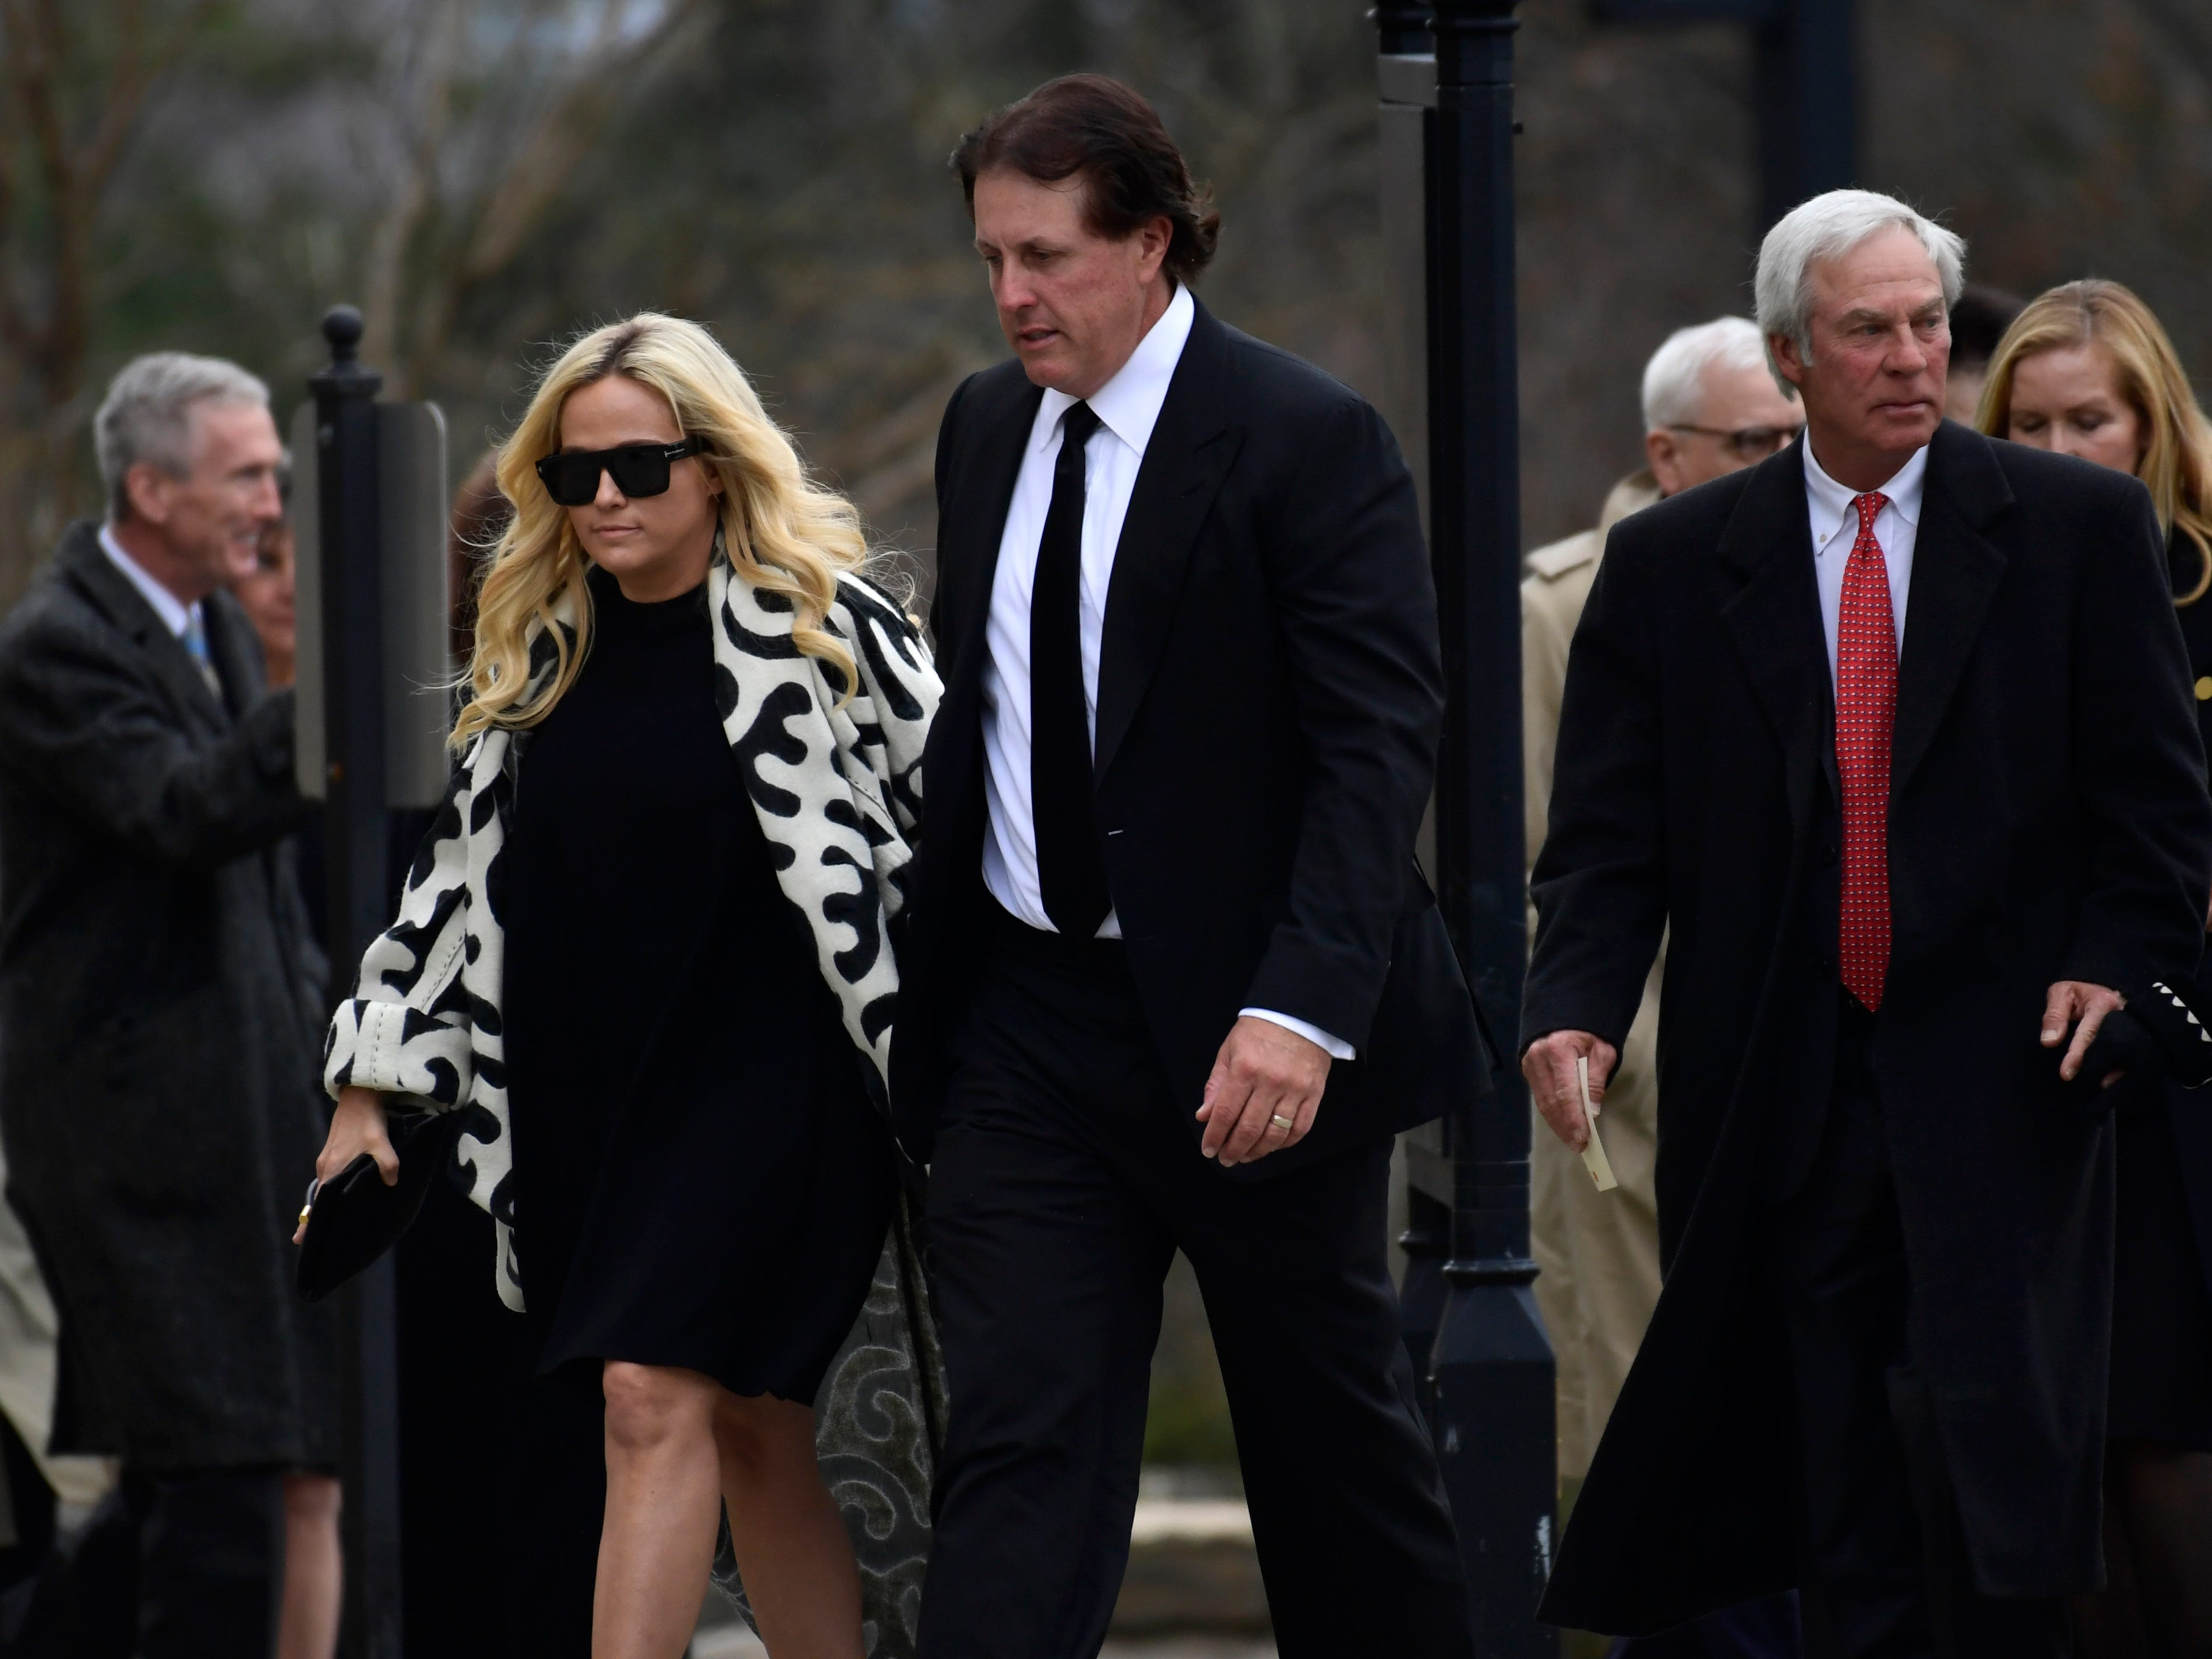 Professional golfer Phil Mickelson, center, arrives for the State Funeral of former President George H.W. Bush at the National Cathedral in Washington, Wednesday, Dec. 5, 2018.